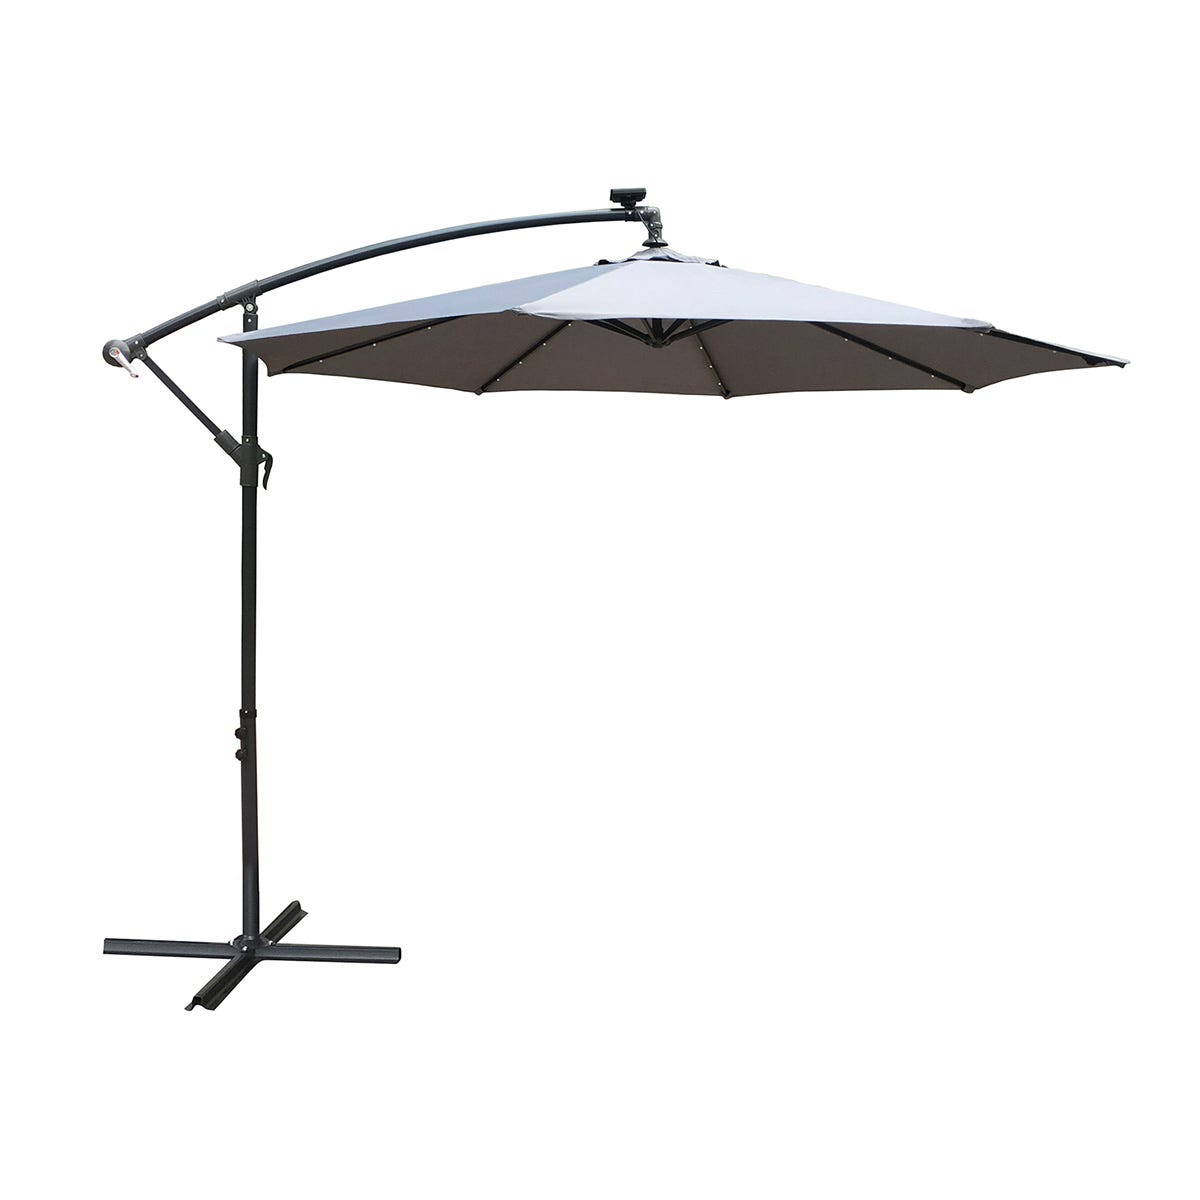 Airwave 3m Banana Hanging Parasol with Solar LED Spotlights (base not included) - Grey